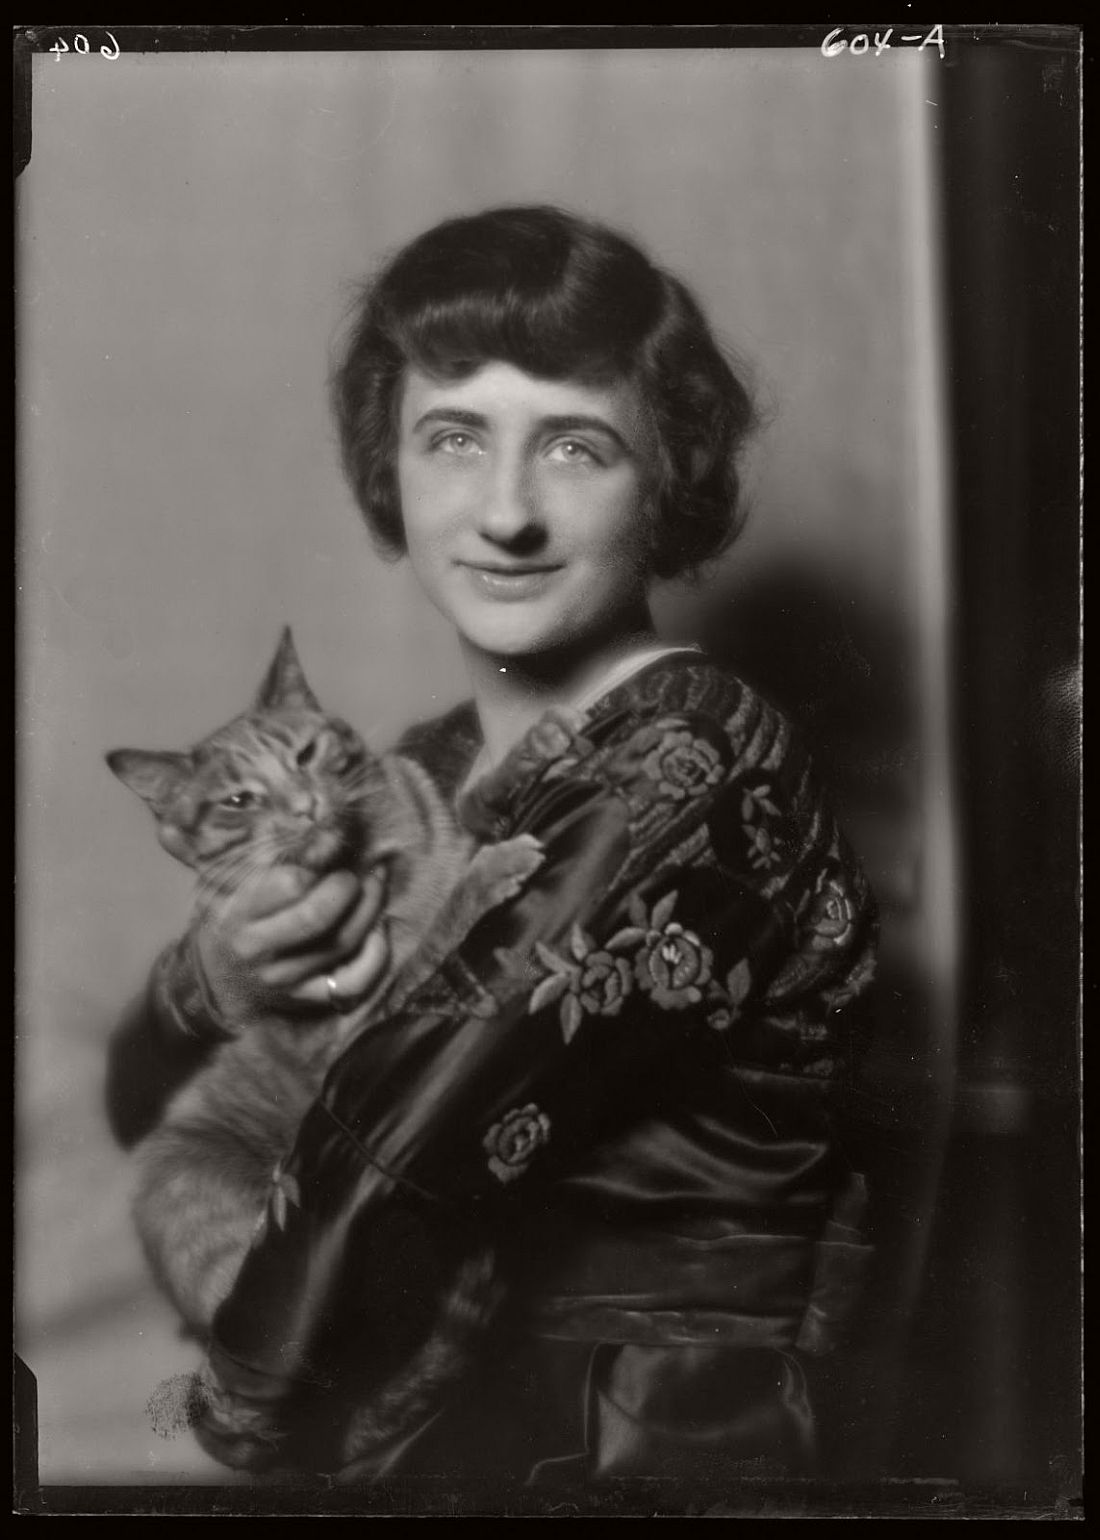 arnold-genthe-1910s-vintage-studio-portraits-of-girls-with-cat-02